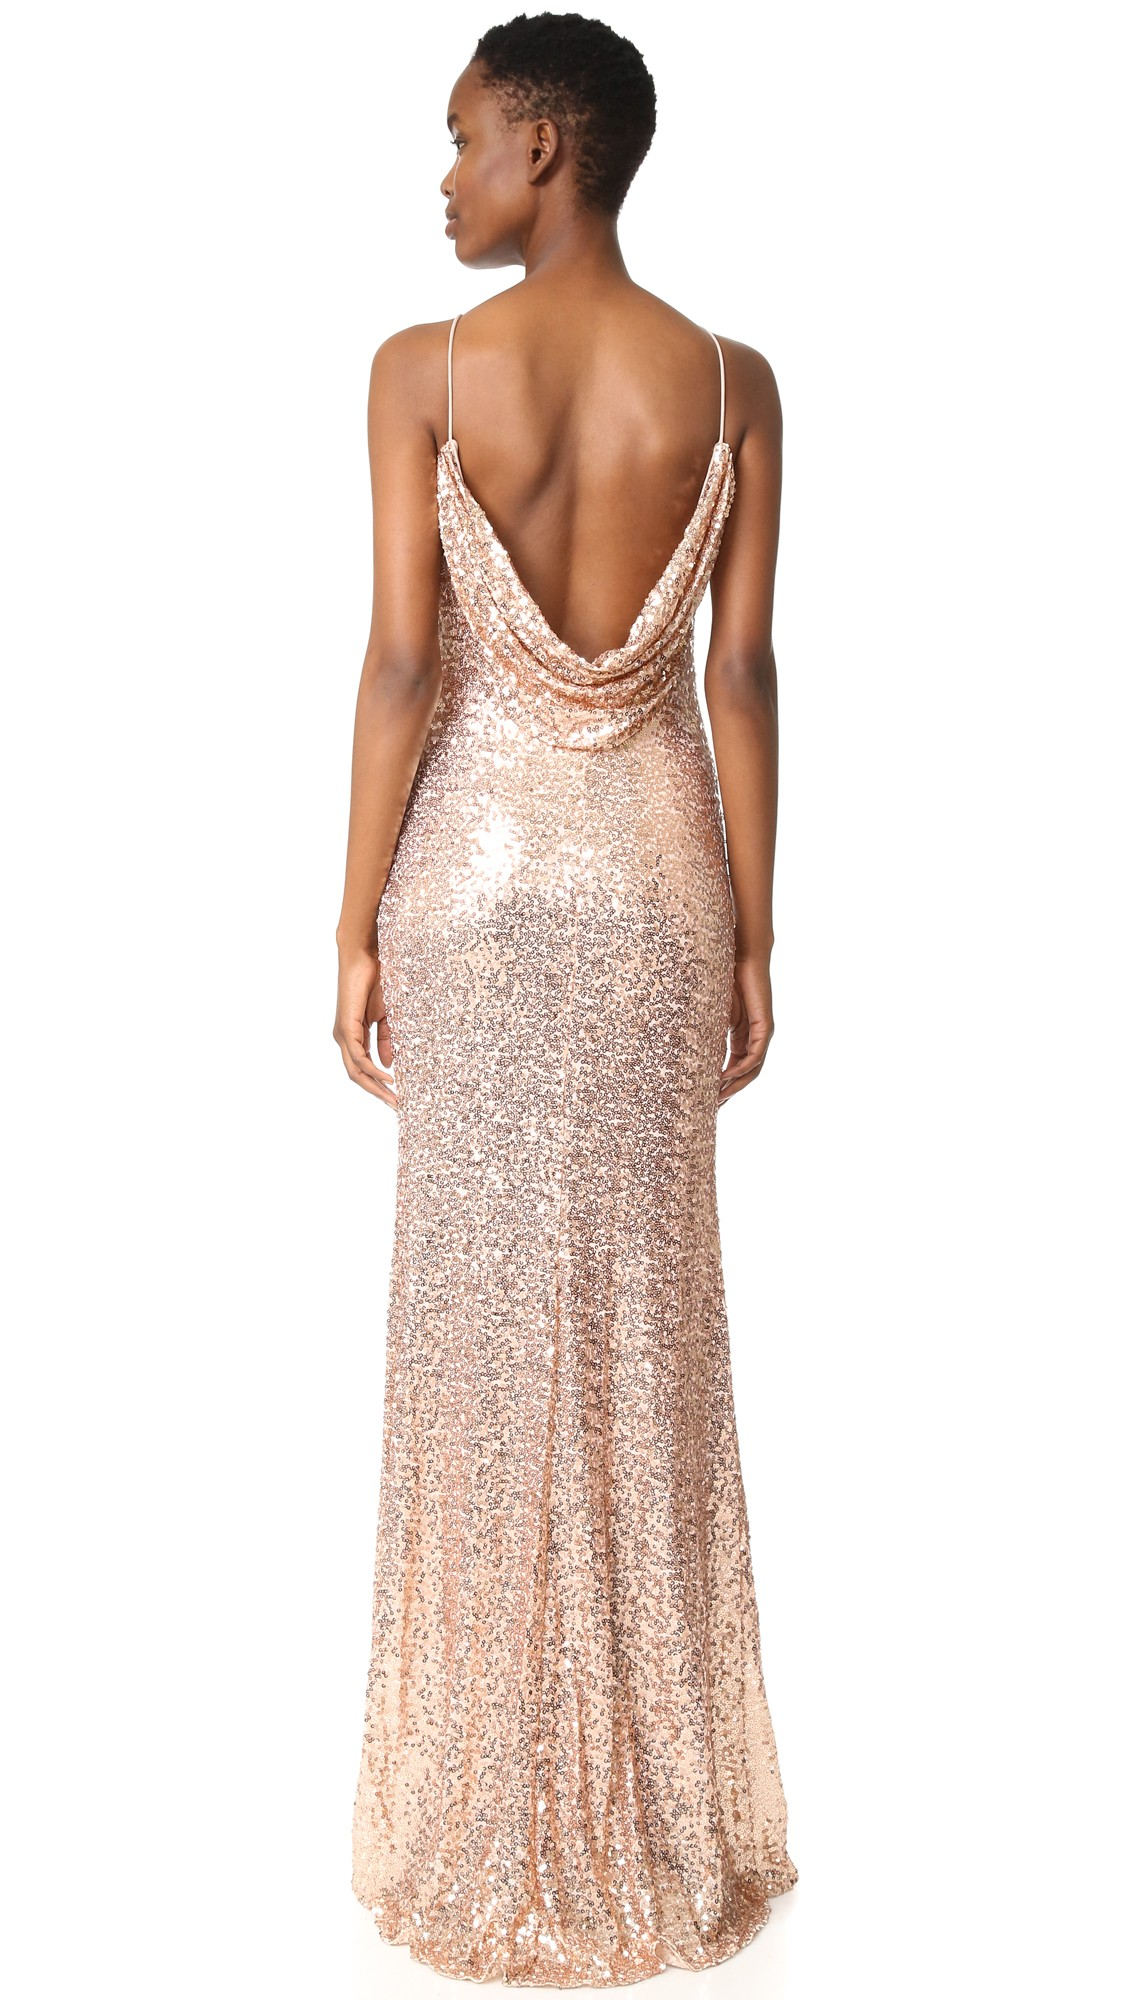 34 glamorous and gorgeous sequin bridesmaids dresses junebug shop rose gold sequin bridesmaids dresses ombrellifo Images